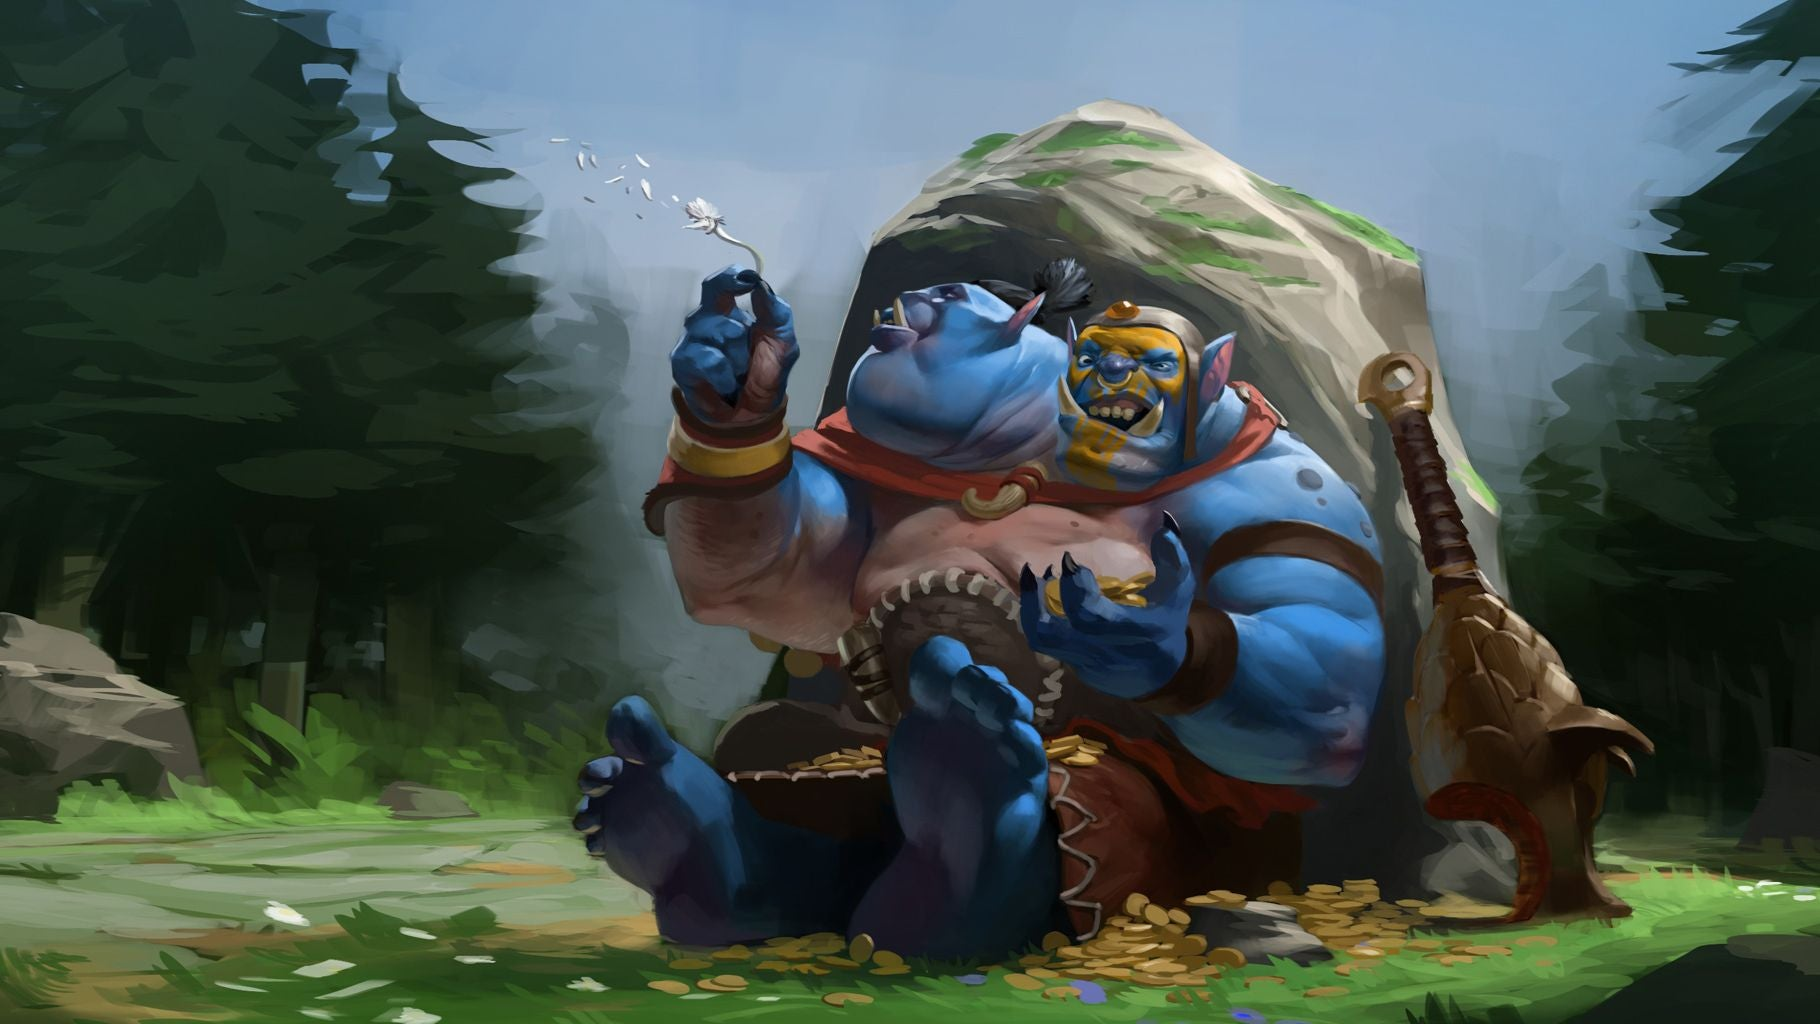 Dota 2 Now Requires Your Phone Number To Play Ranked Matches